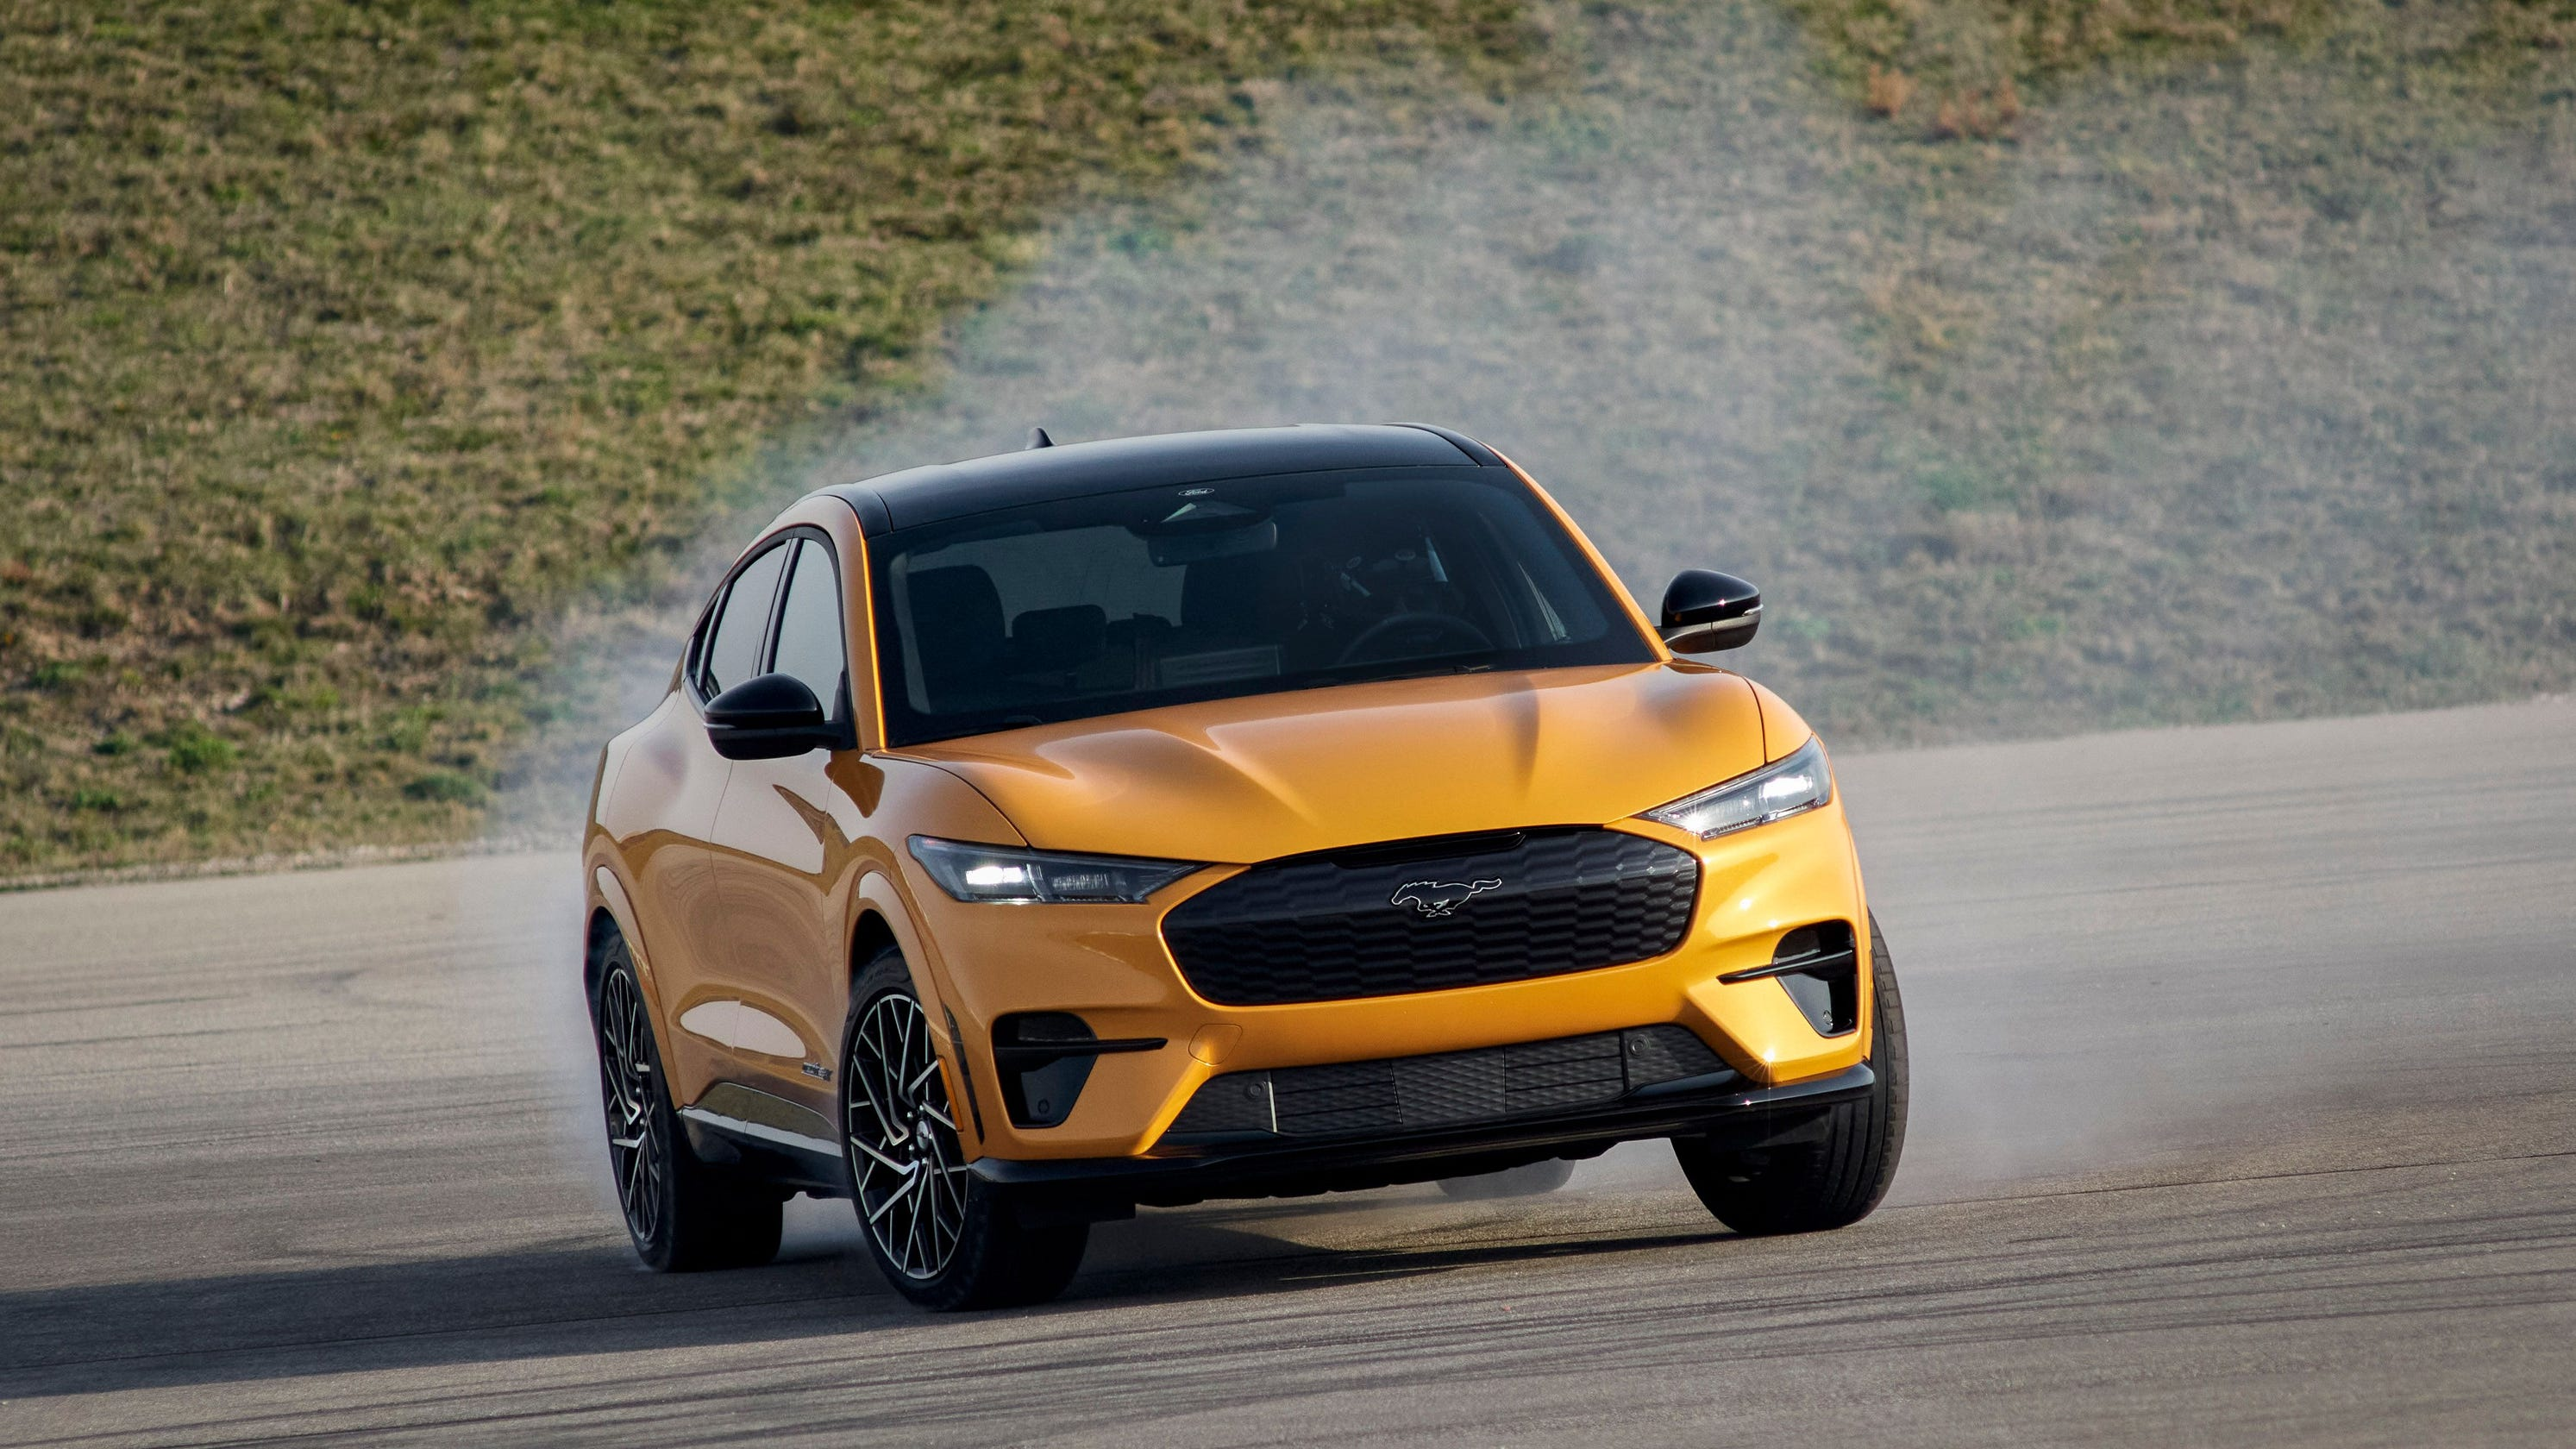 Mustang Mach-E GT, Performance Edition shatter Ford's targeted EPA-estimated ranges